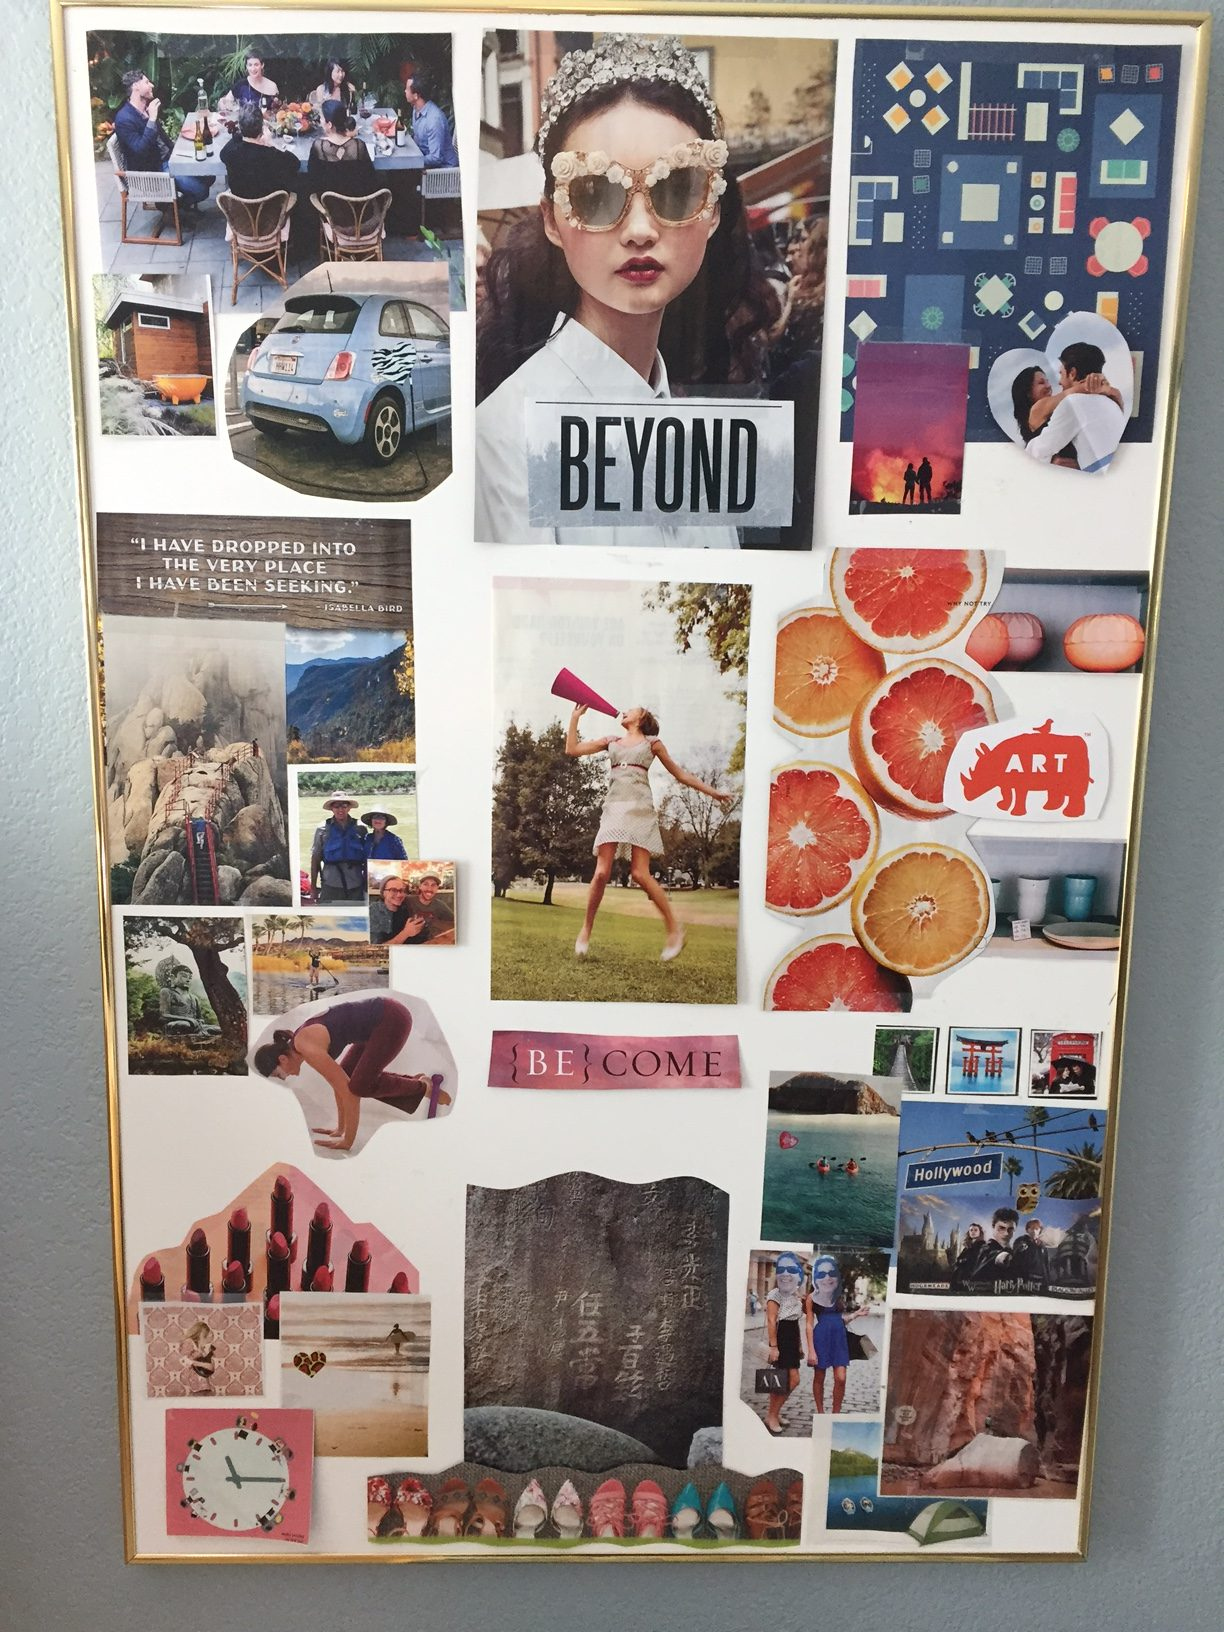 Feng Shui Bagua Vision Board What Is A Vision Board And How Is It Different Than